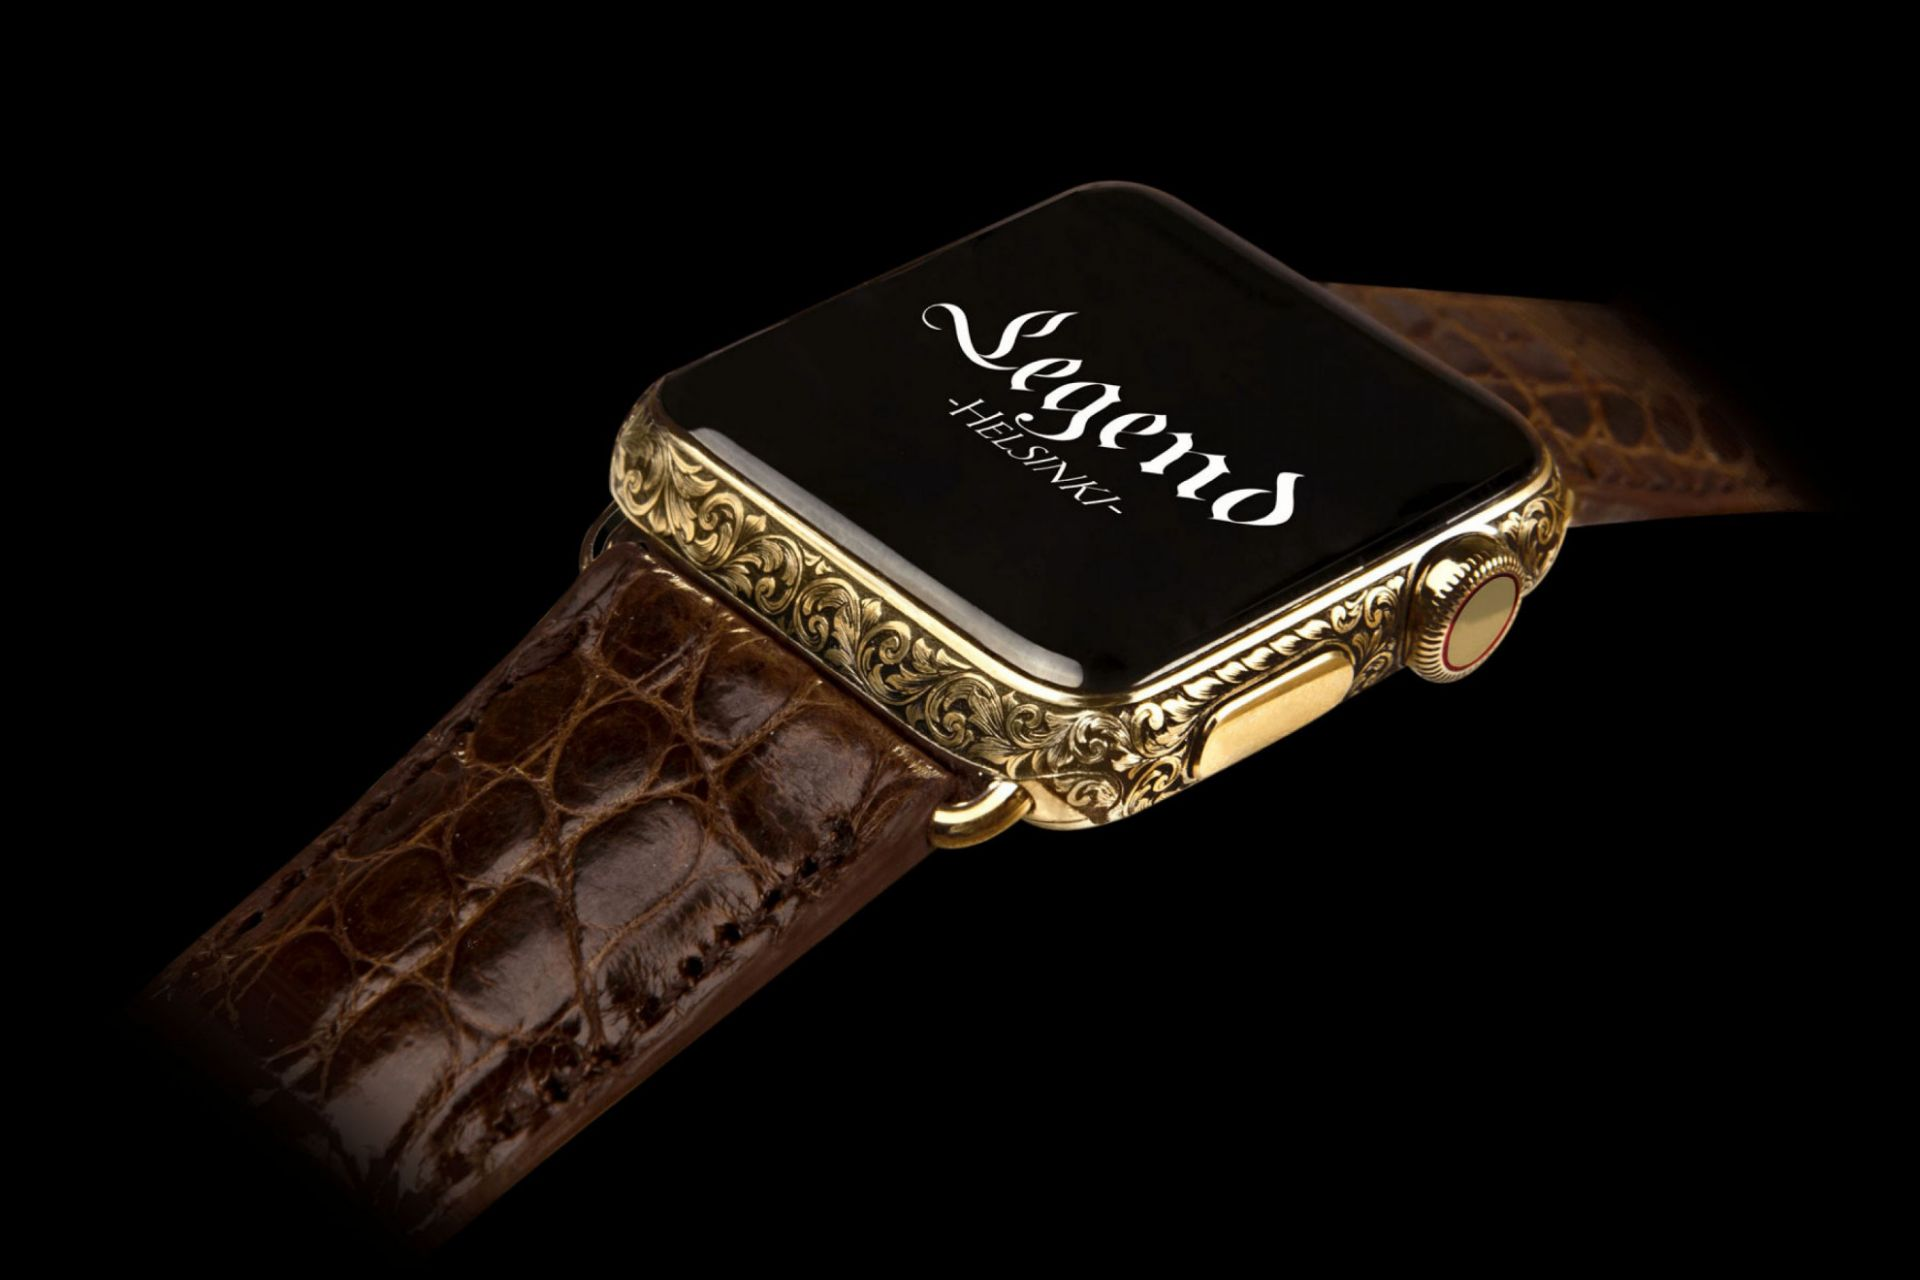 Bespoke Apple Watch series 5 by Legend, 24k gold hand engraved case, crocodile